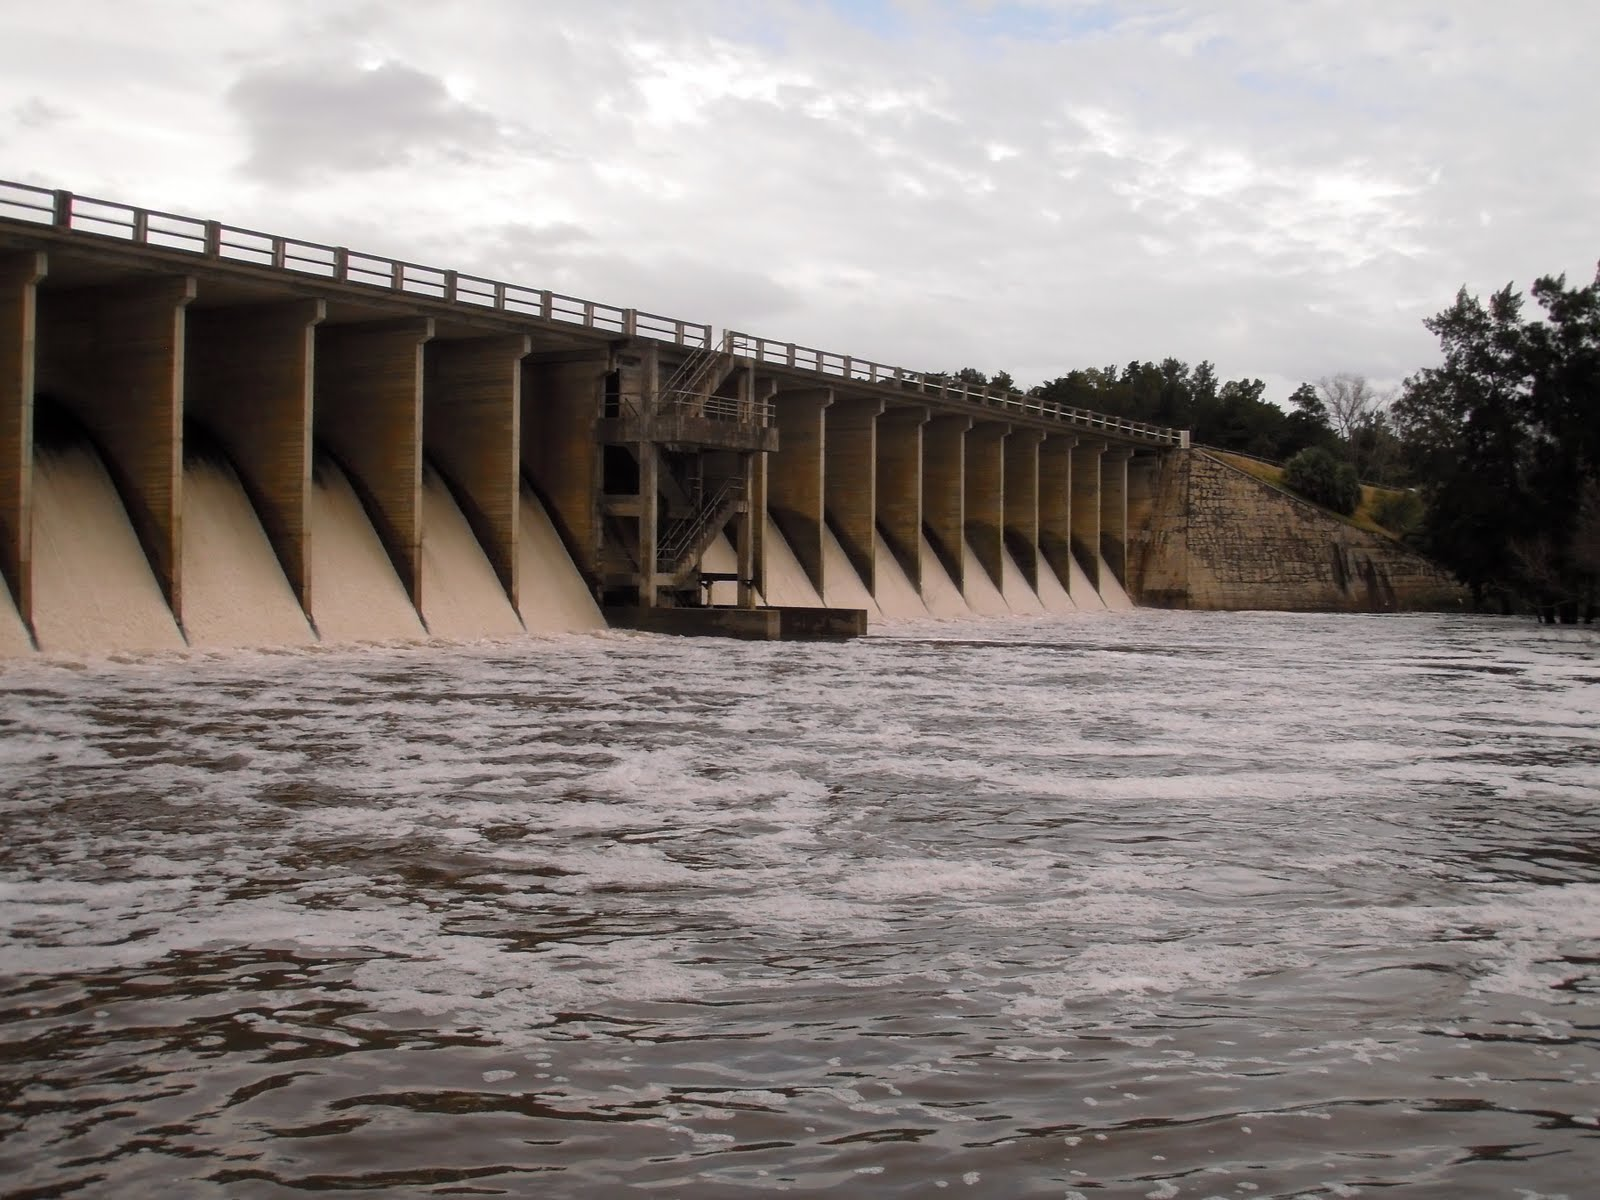 Smart Engineering signs a international contract with the University of the Republic to study Canelon Grande dam in Uruguay